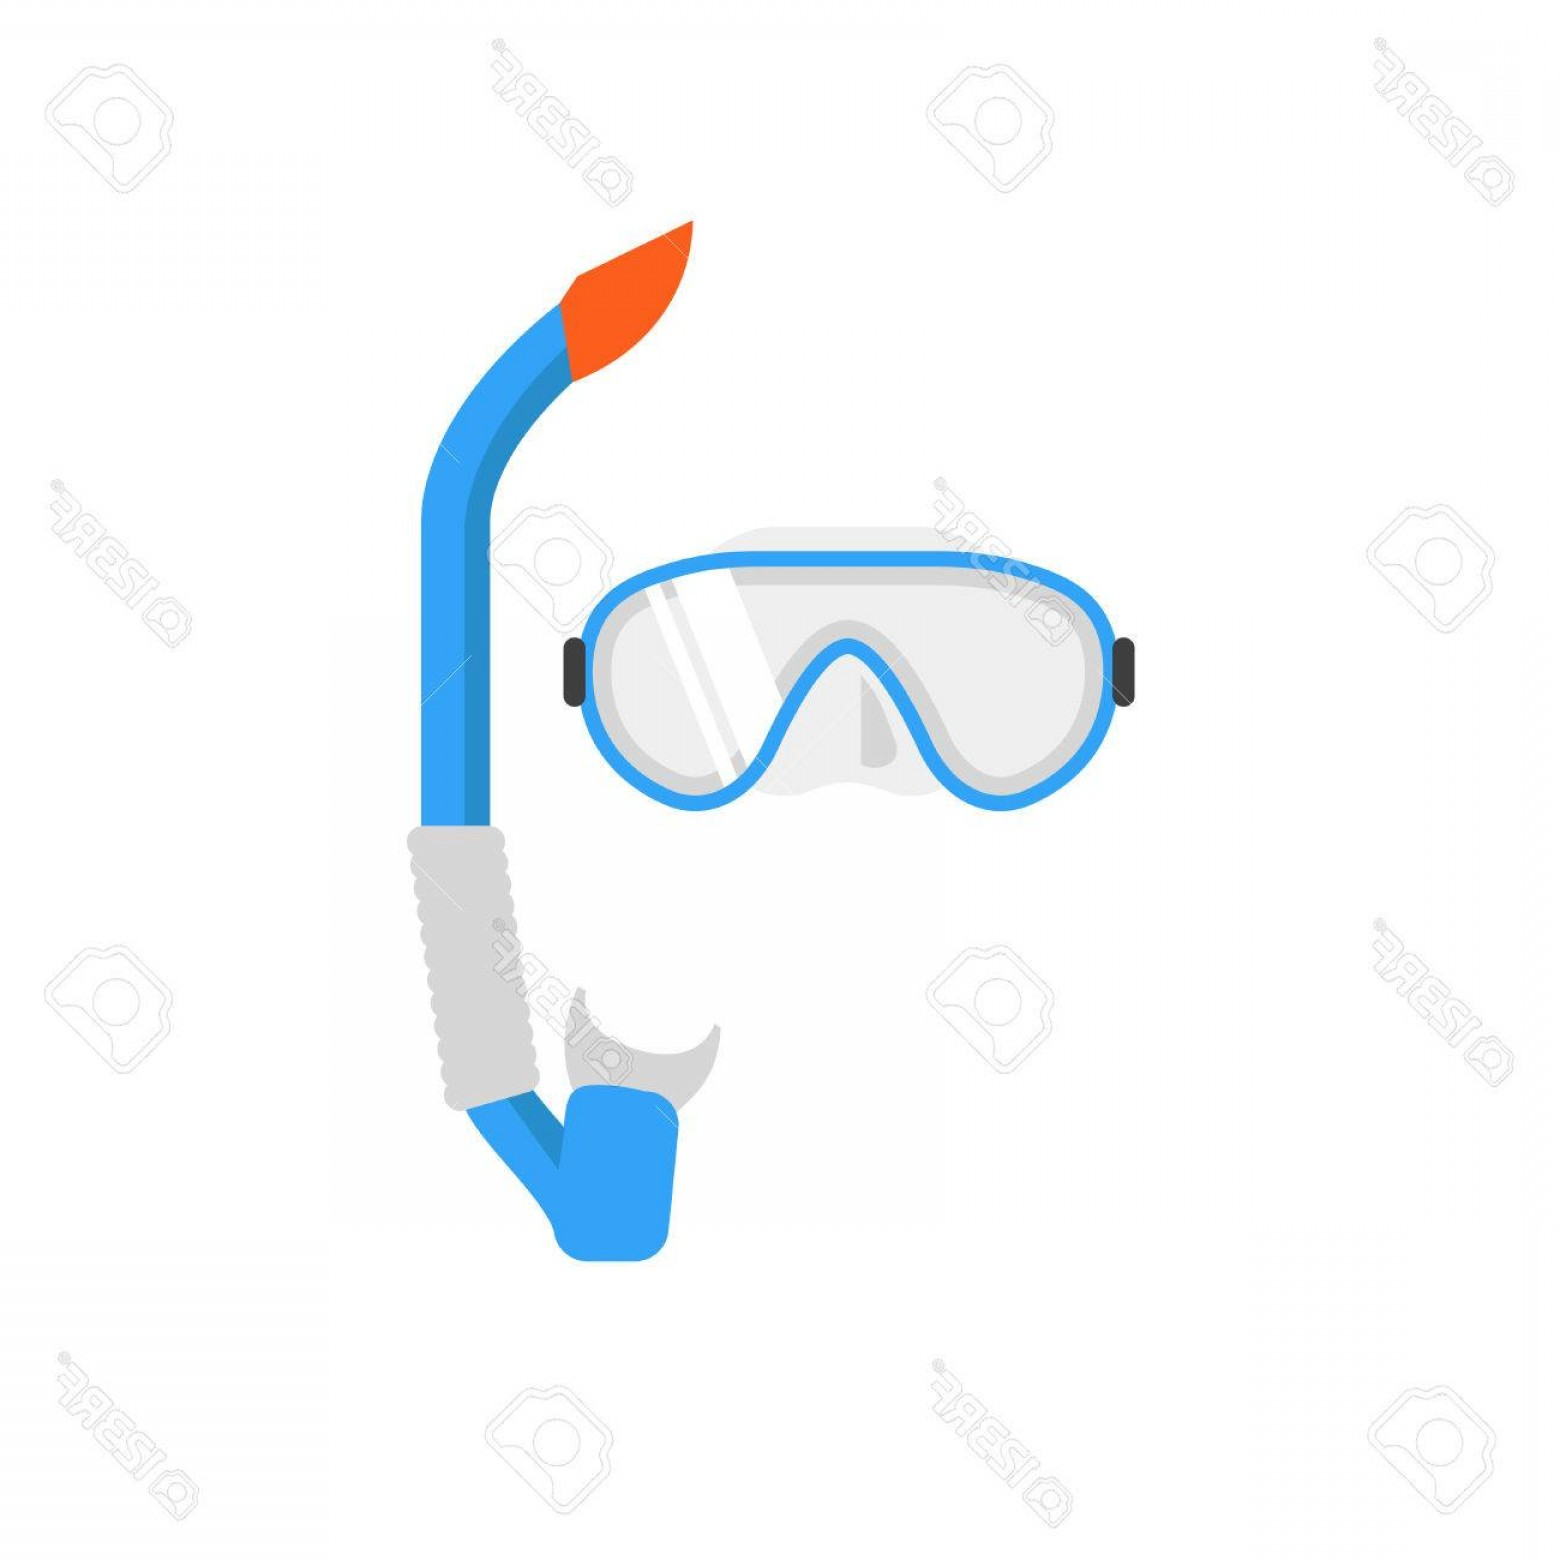 Dive Mask E Vectors: Photostock Vector Diving Mask And Snorkel Vector Illustration Swimming Mask Diving Equipment Vector Sign Summer Swimmi